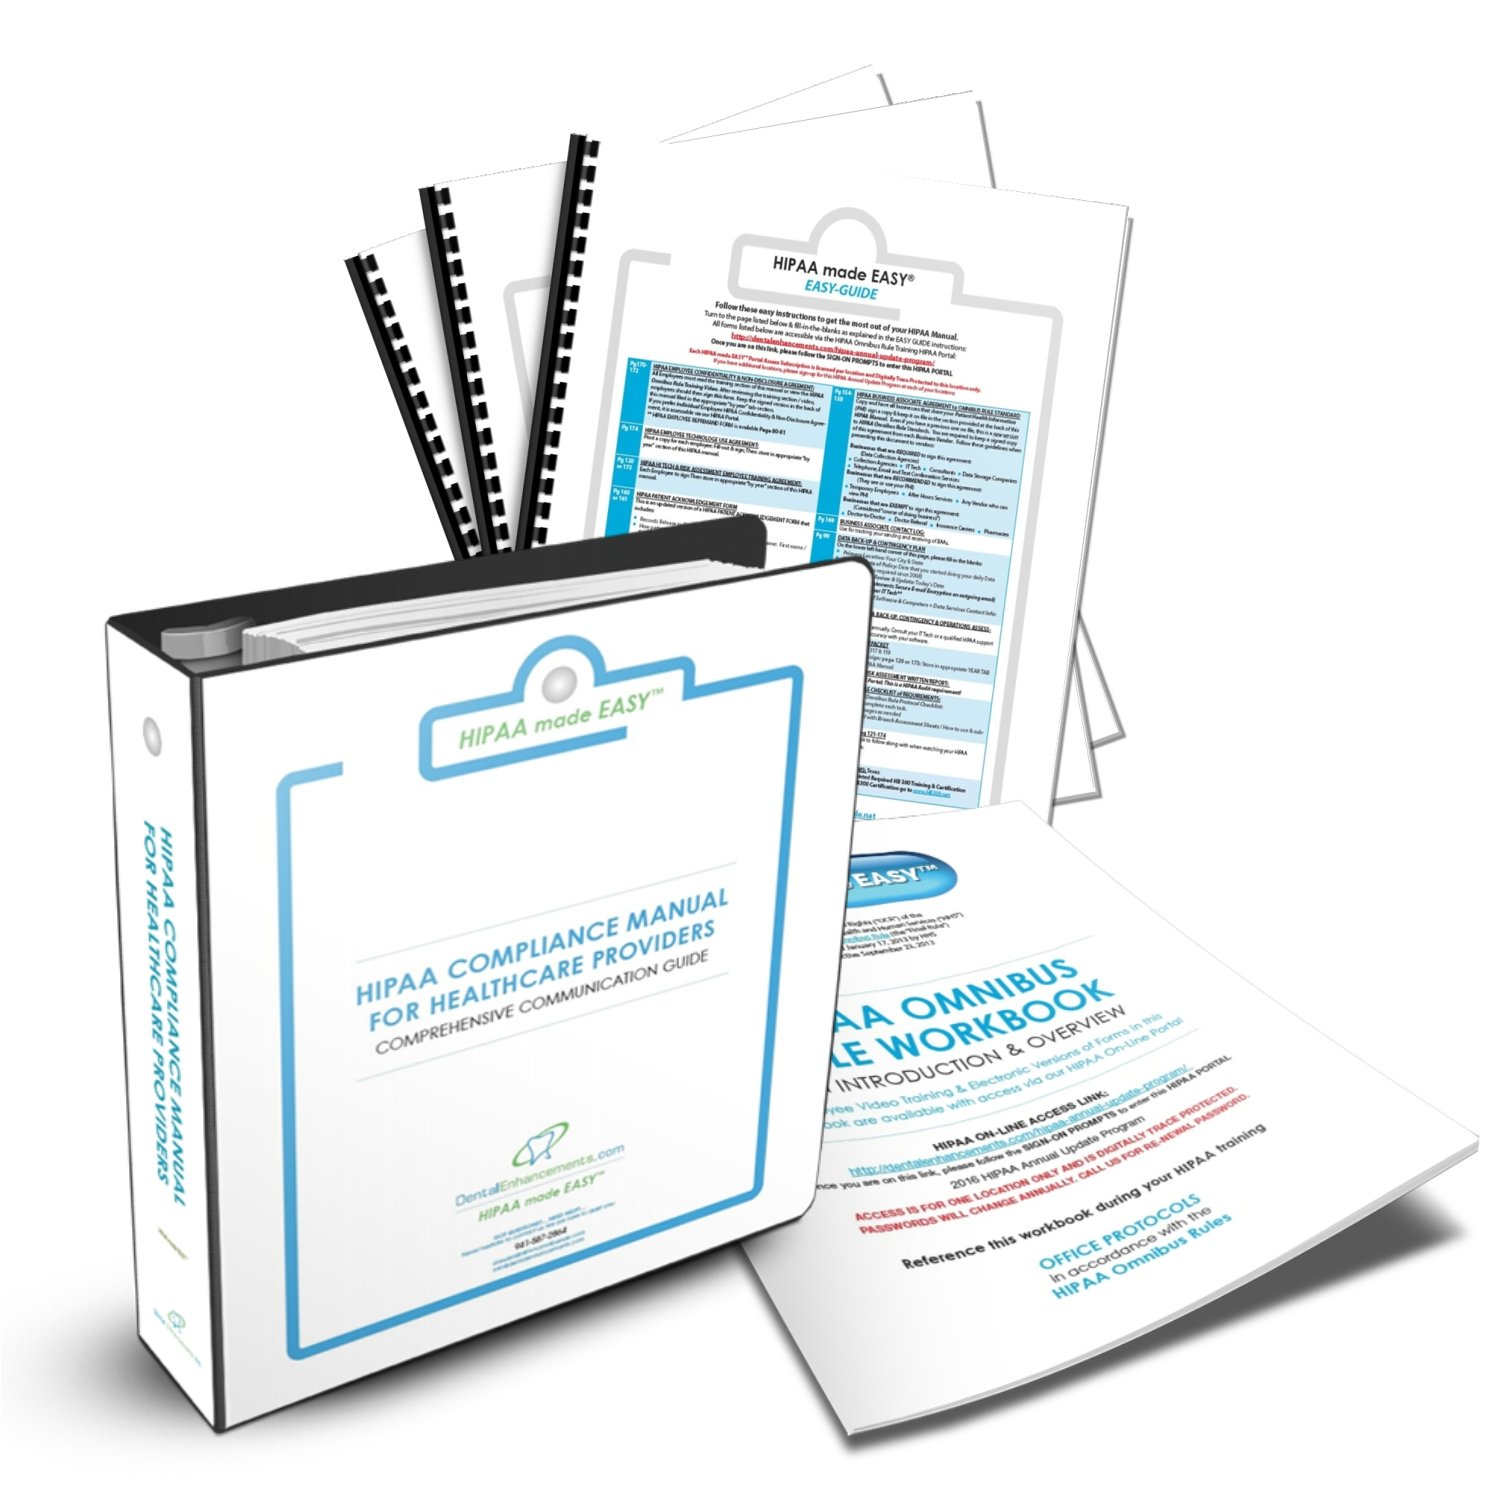 2021 HIPAA COMPLETE COMPLIANCE PKG By HIPAA Made EASY includes HIPAA Compliance Manual, Training Video, eForms to Omnibus Rule Hi Tech Standards